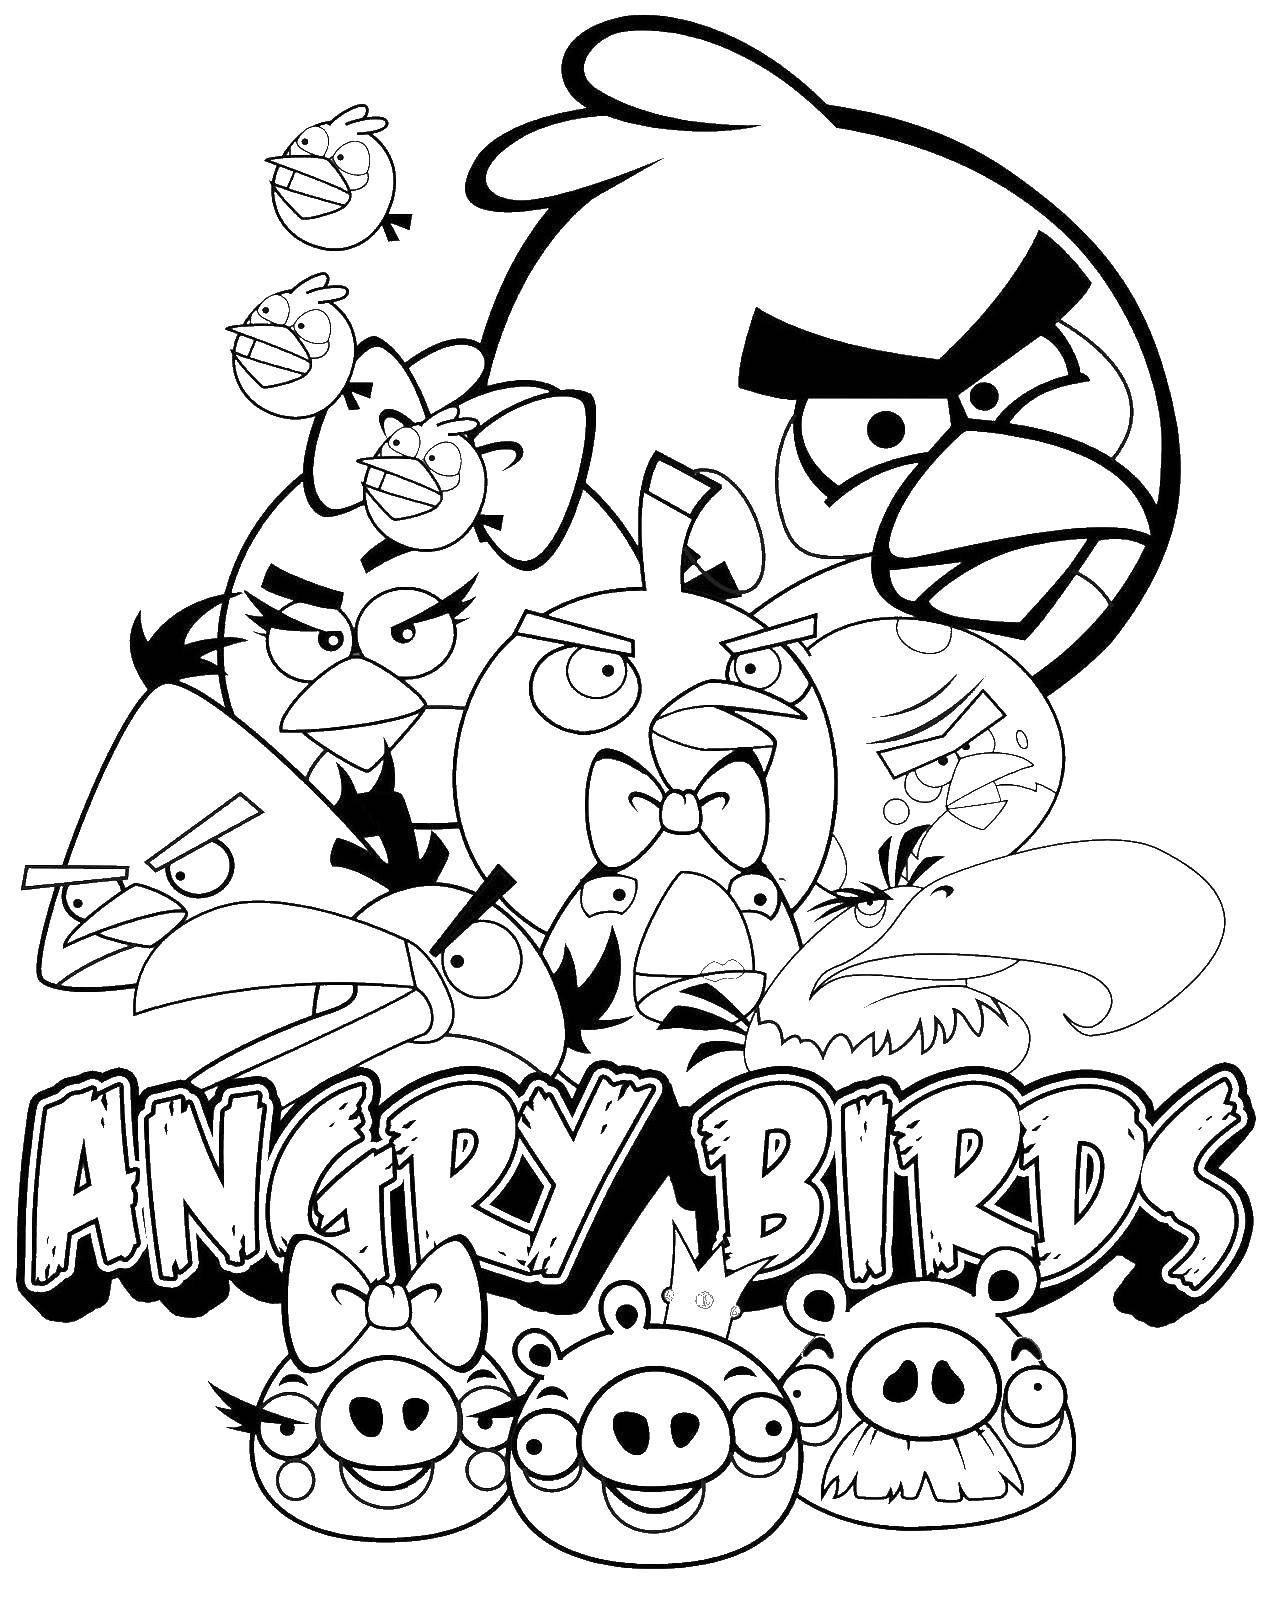 Coloring Angry birds. Category angry birds. Tags:  angry birds.